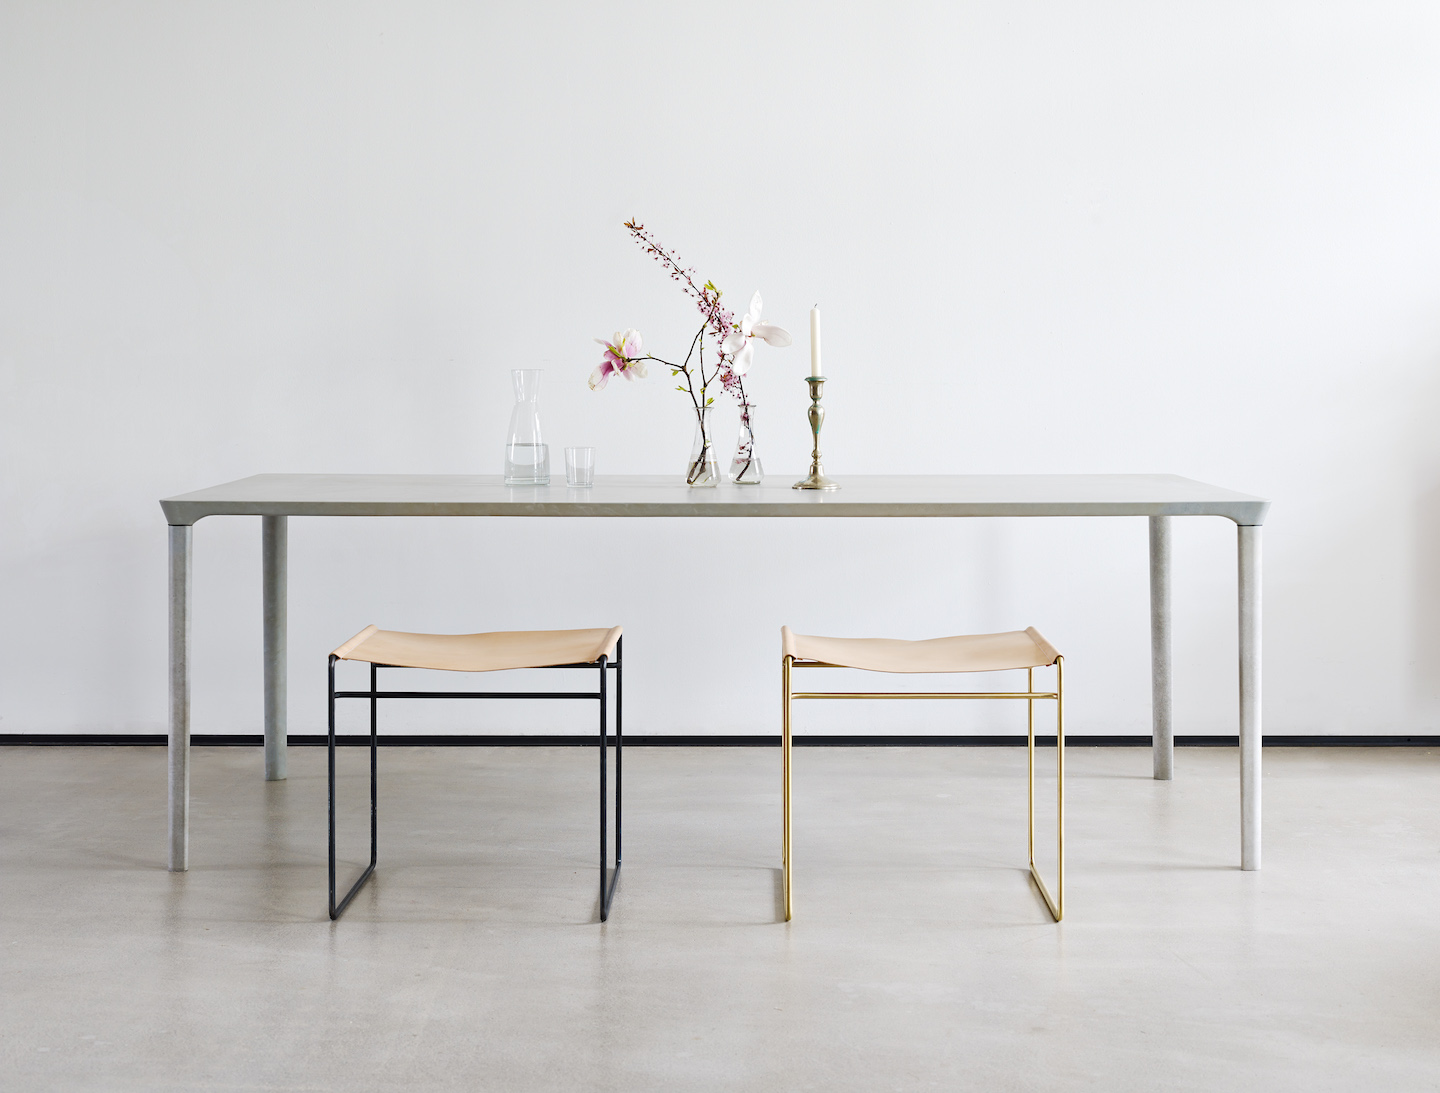 Nina Mair Concrete Table 01